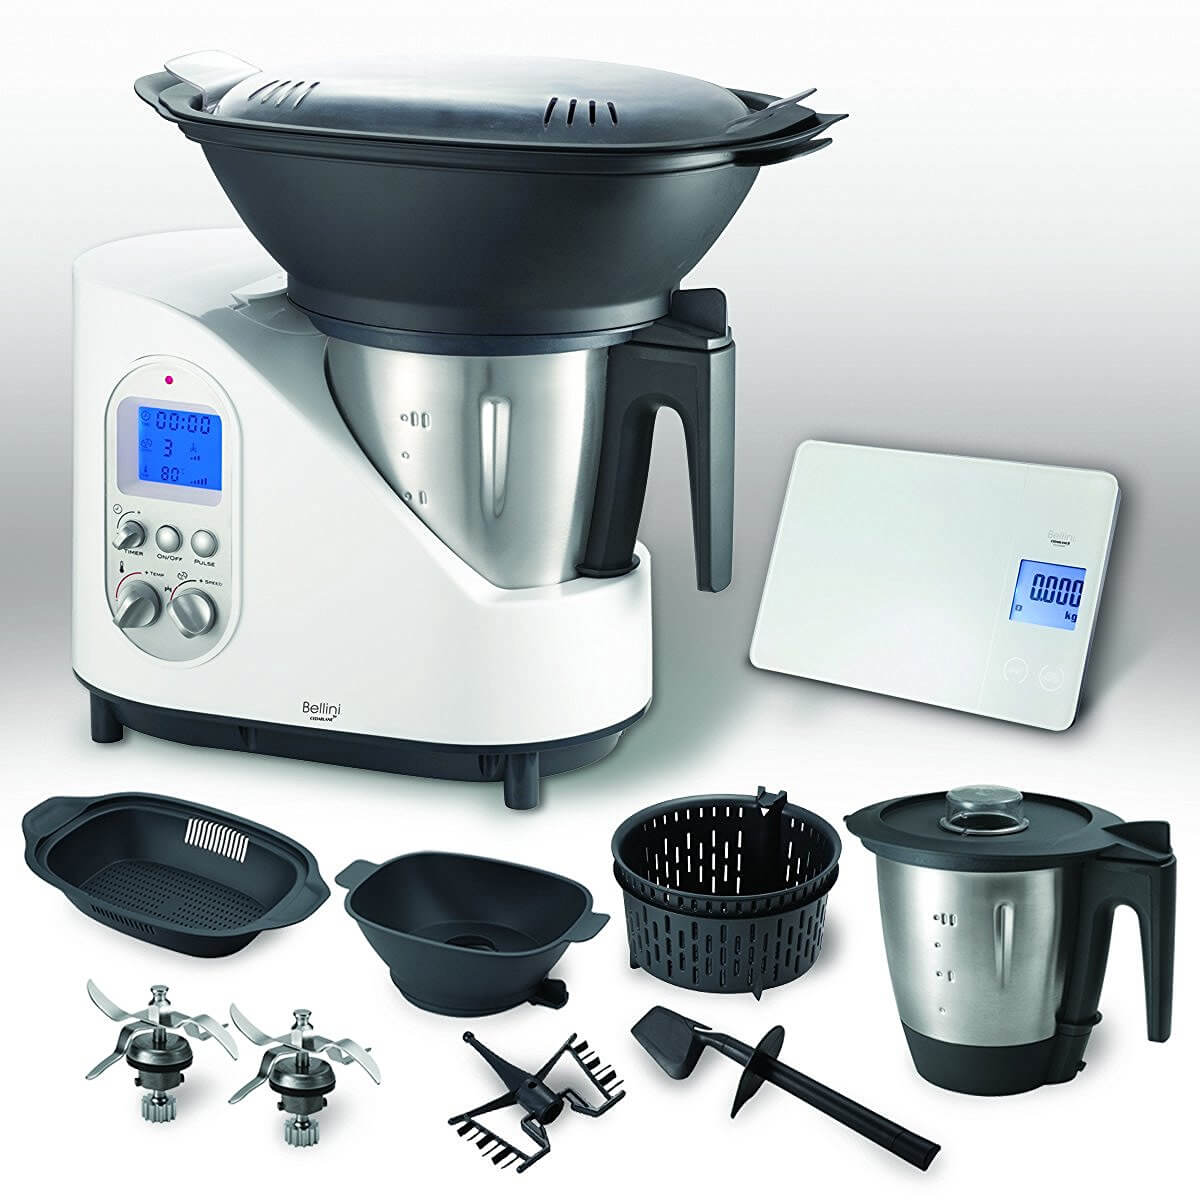 bellini by cedarlane bmkm510cl kitchen master the best all in one kitchen appliances   food processr  rh   foodprocessr com